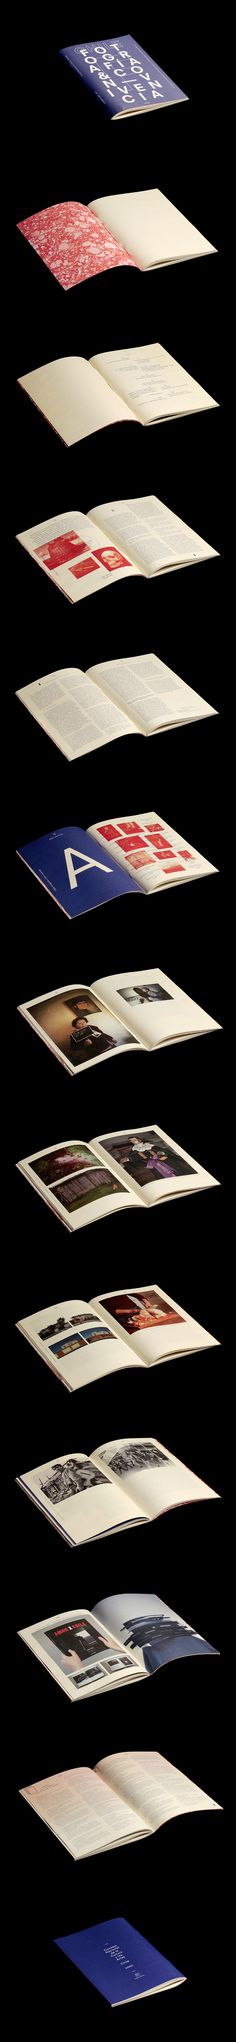 Catalogue for the exhibition Fotografía y con-vivencia (Photography and co-existence). The exhibition is a selection of visual works around the theme of coexistence, understood as an essential resource for peace, consisting of a large sample of photo projects of contemporary Chilean authors. http://cordovacanillas.com/fotografia-y-con-vivencia-2/